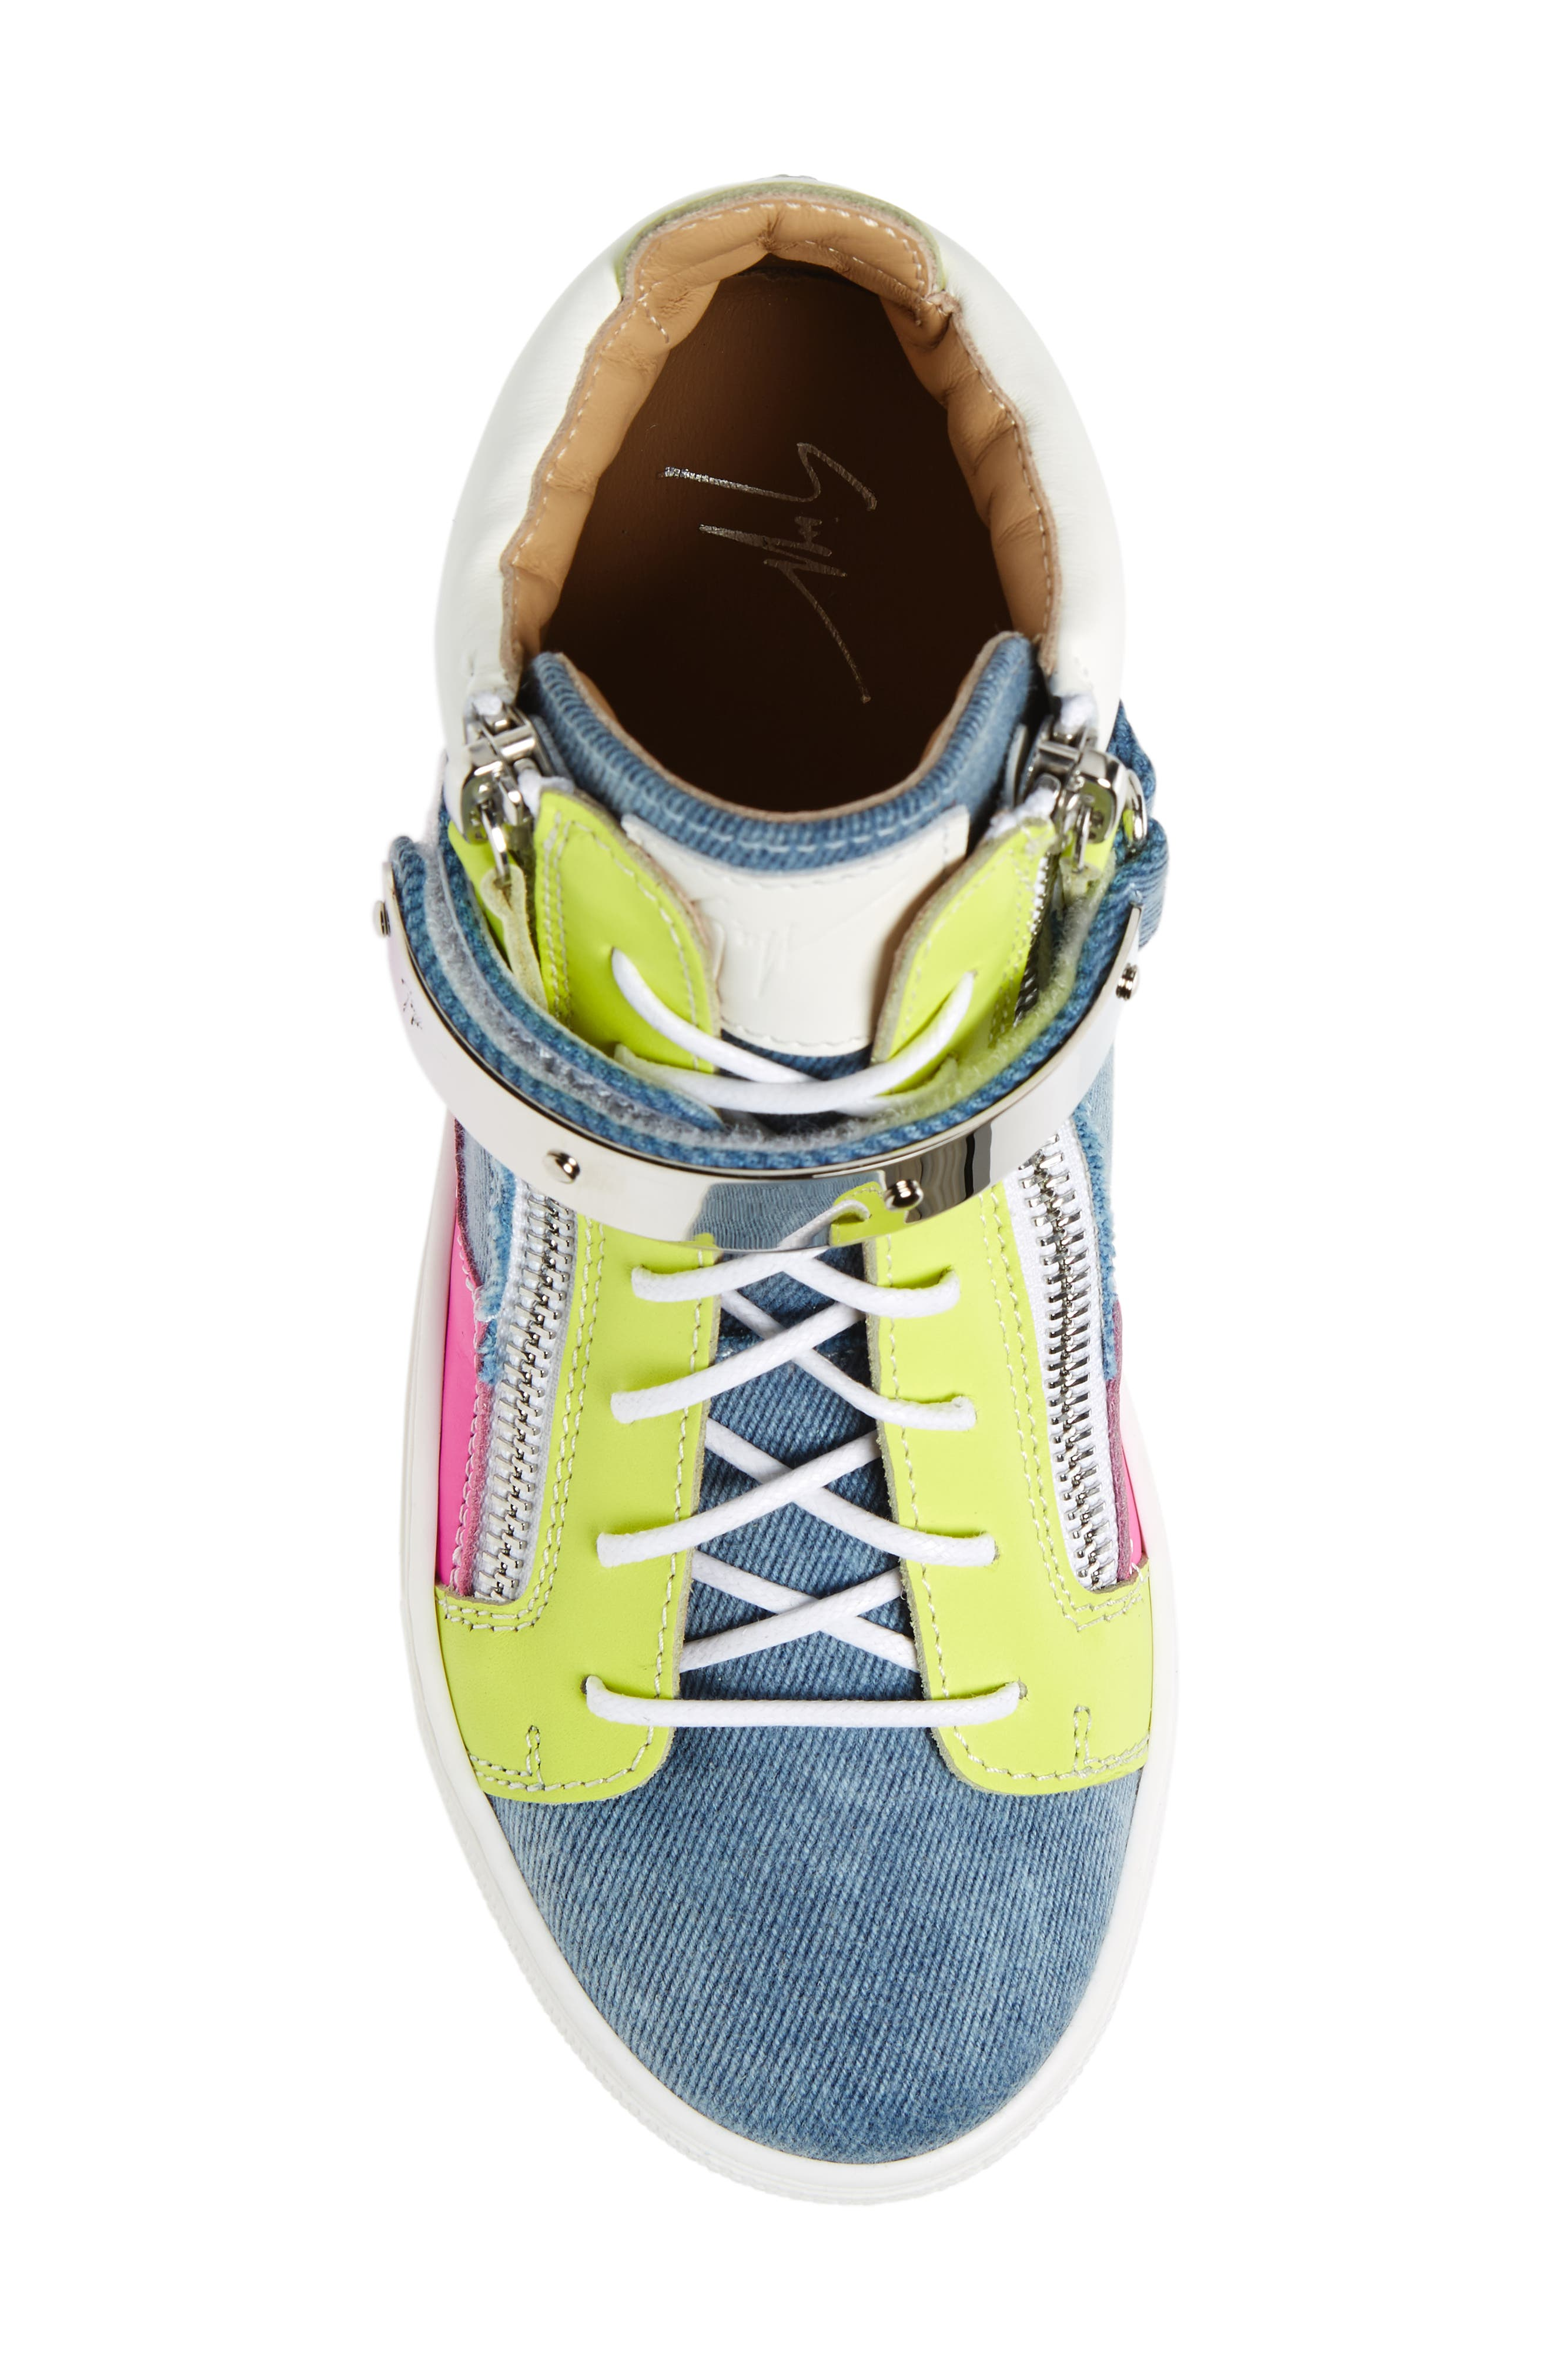 London High Top Sneaker,                             Alternate thumbnail 5, color,                             Multi